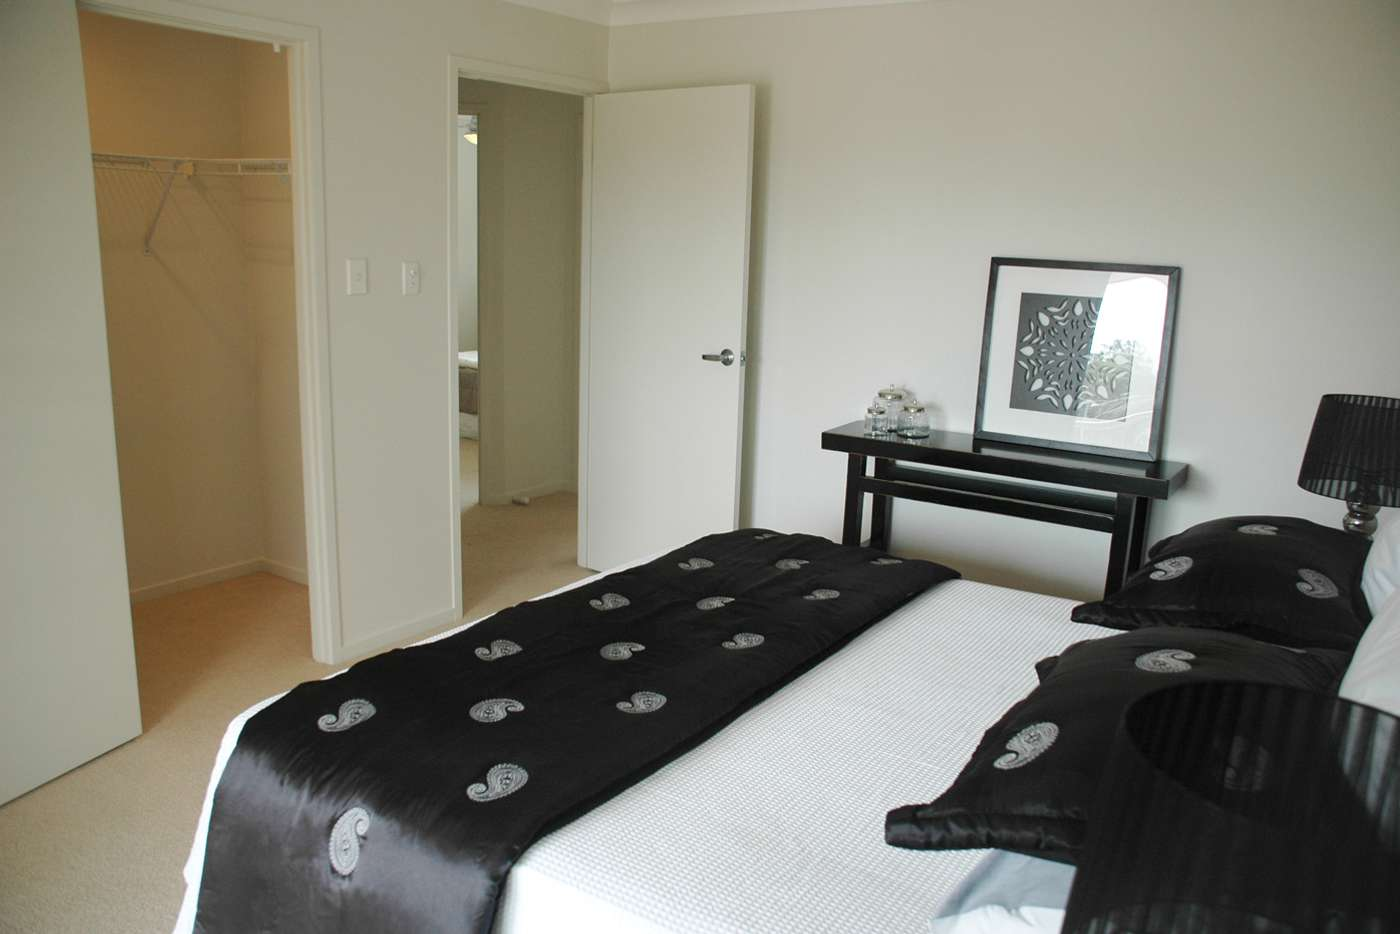 Sixth view of Homely townhouse listing, 116-136 Station Rd, Loganlea, Loganlea QLD 4131